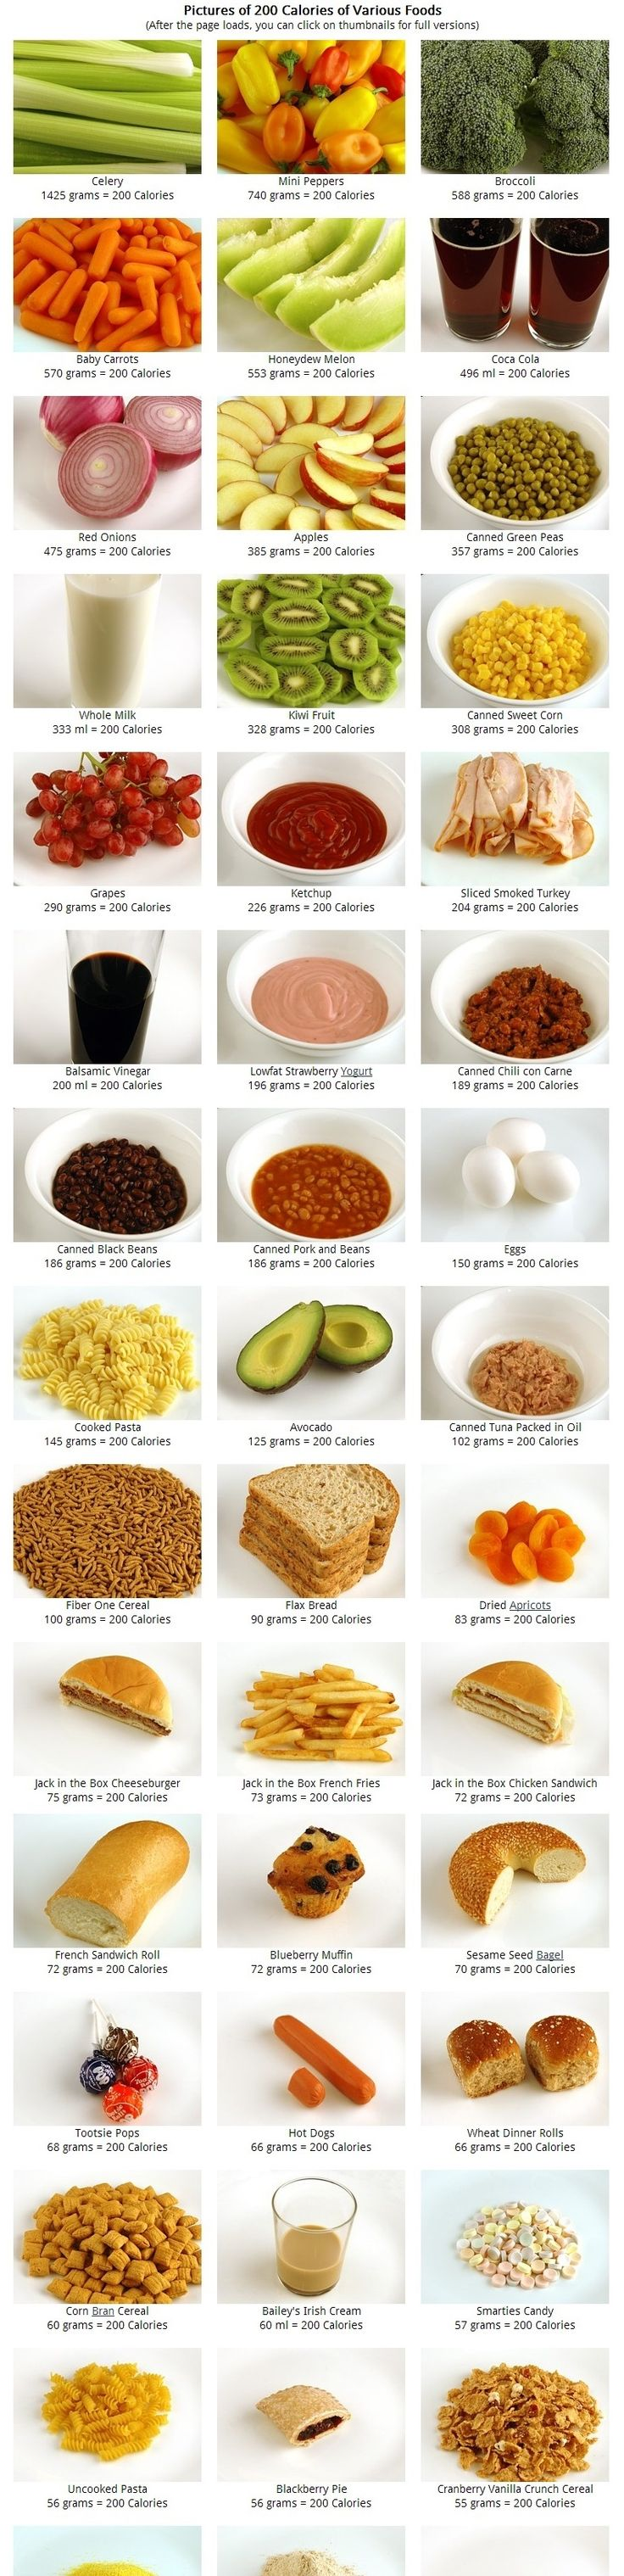 Pictures of 200 Calories of Various Foods. Some foods have significantly more Calories than others but what does the difference actually look like. Each of the photographs below represents 200 Calories of the particular type of food; the images are sorted from low to high calorie density. (Check out the FULL list!)